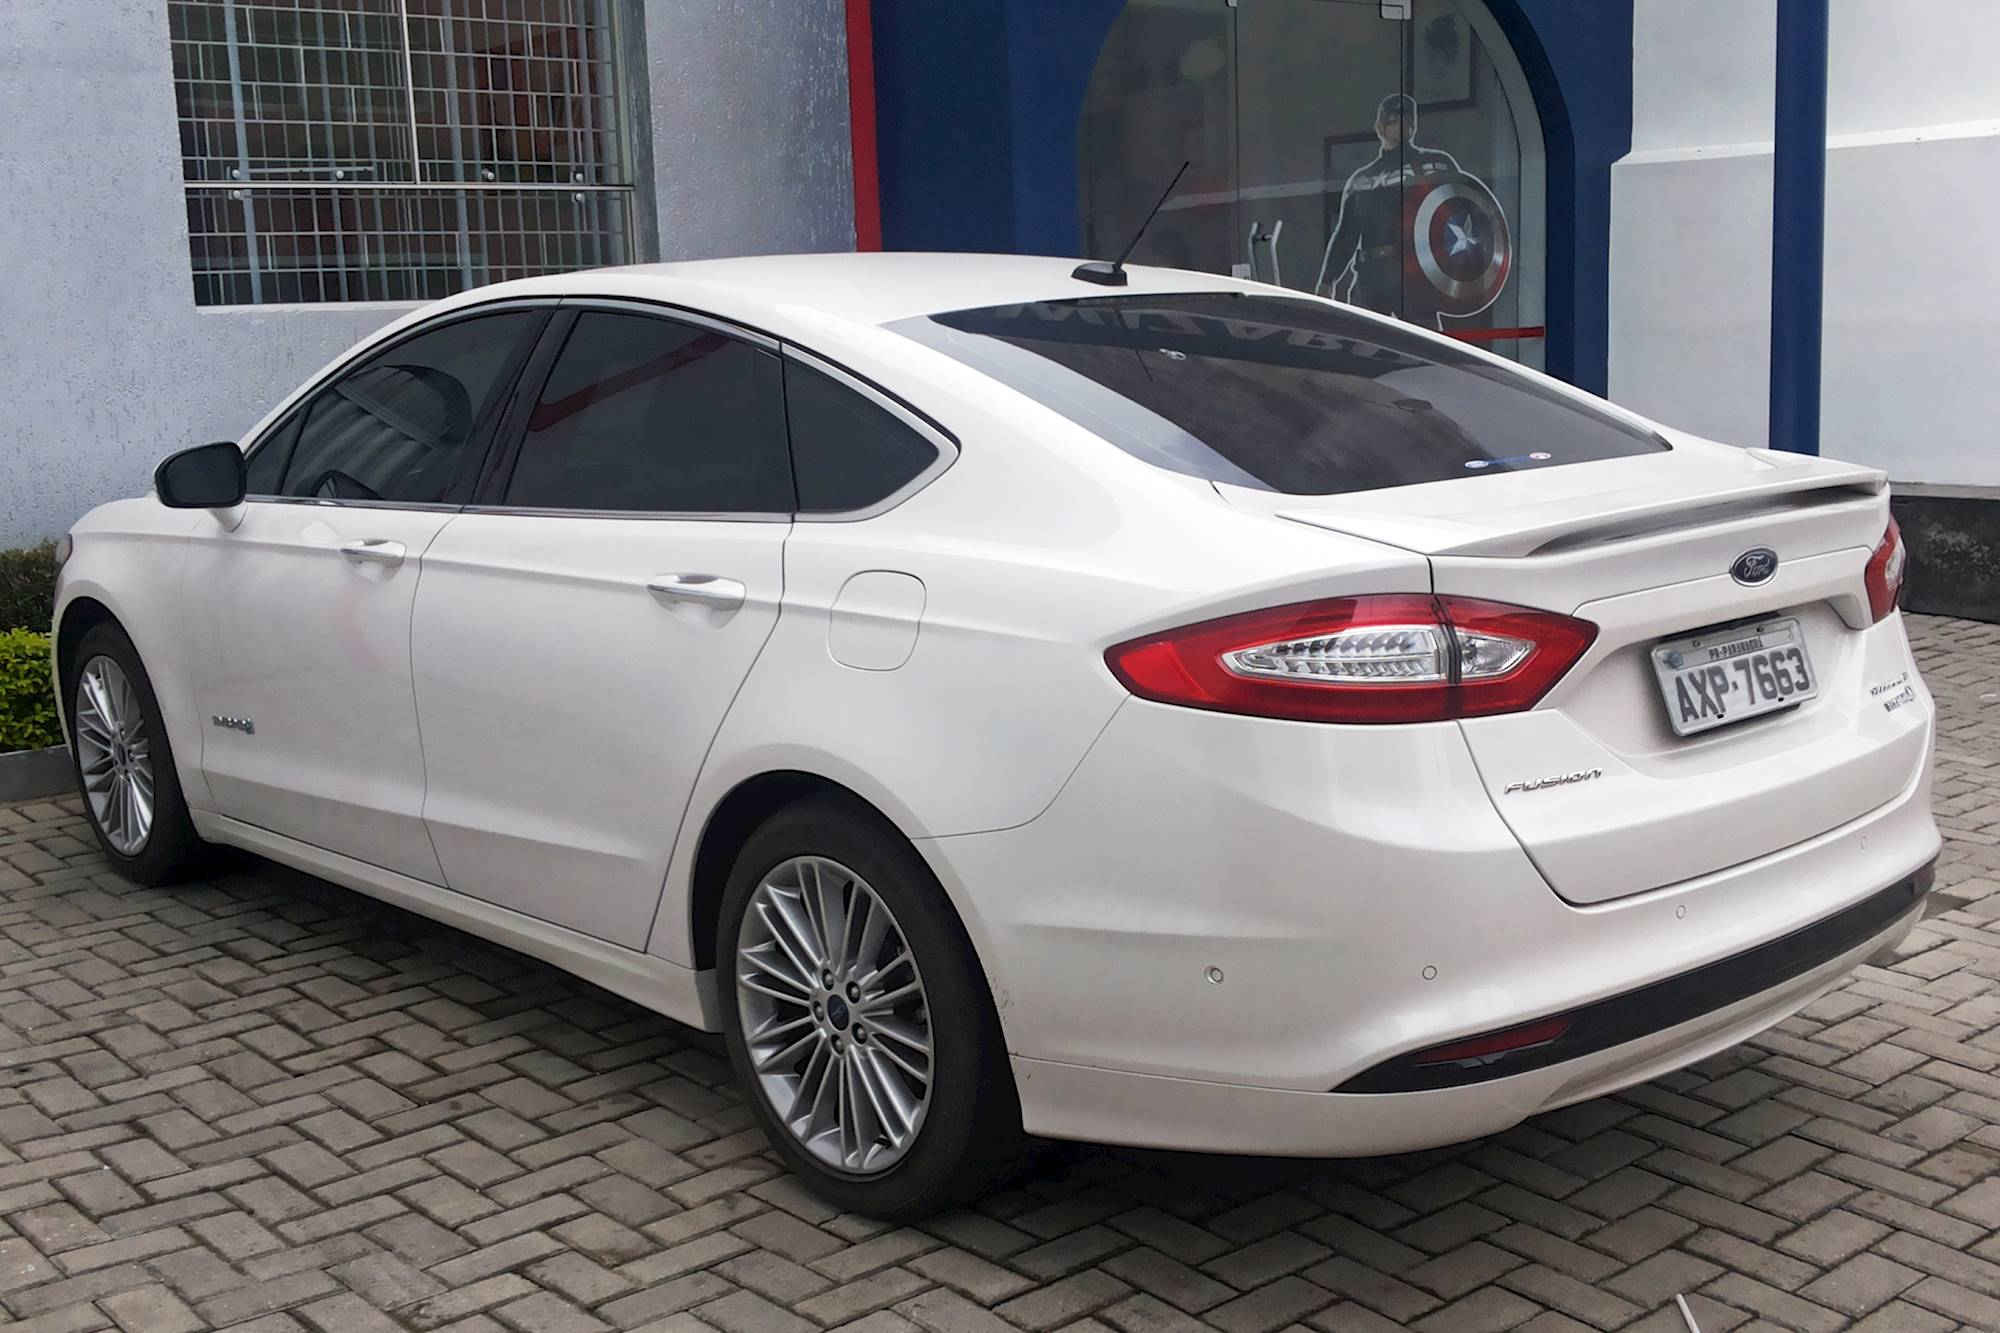 2015 Ford Fusion Titanium Sedan 2 0l Turbo Awd Auto W